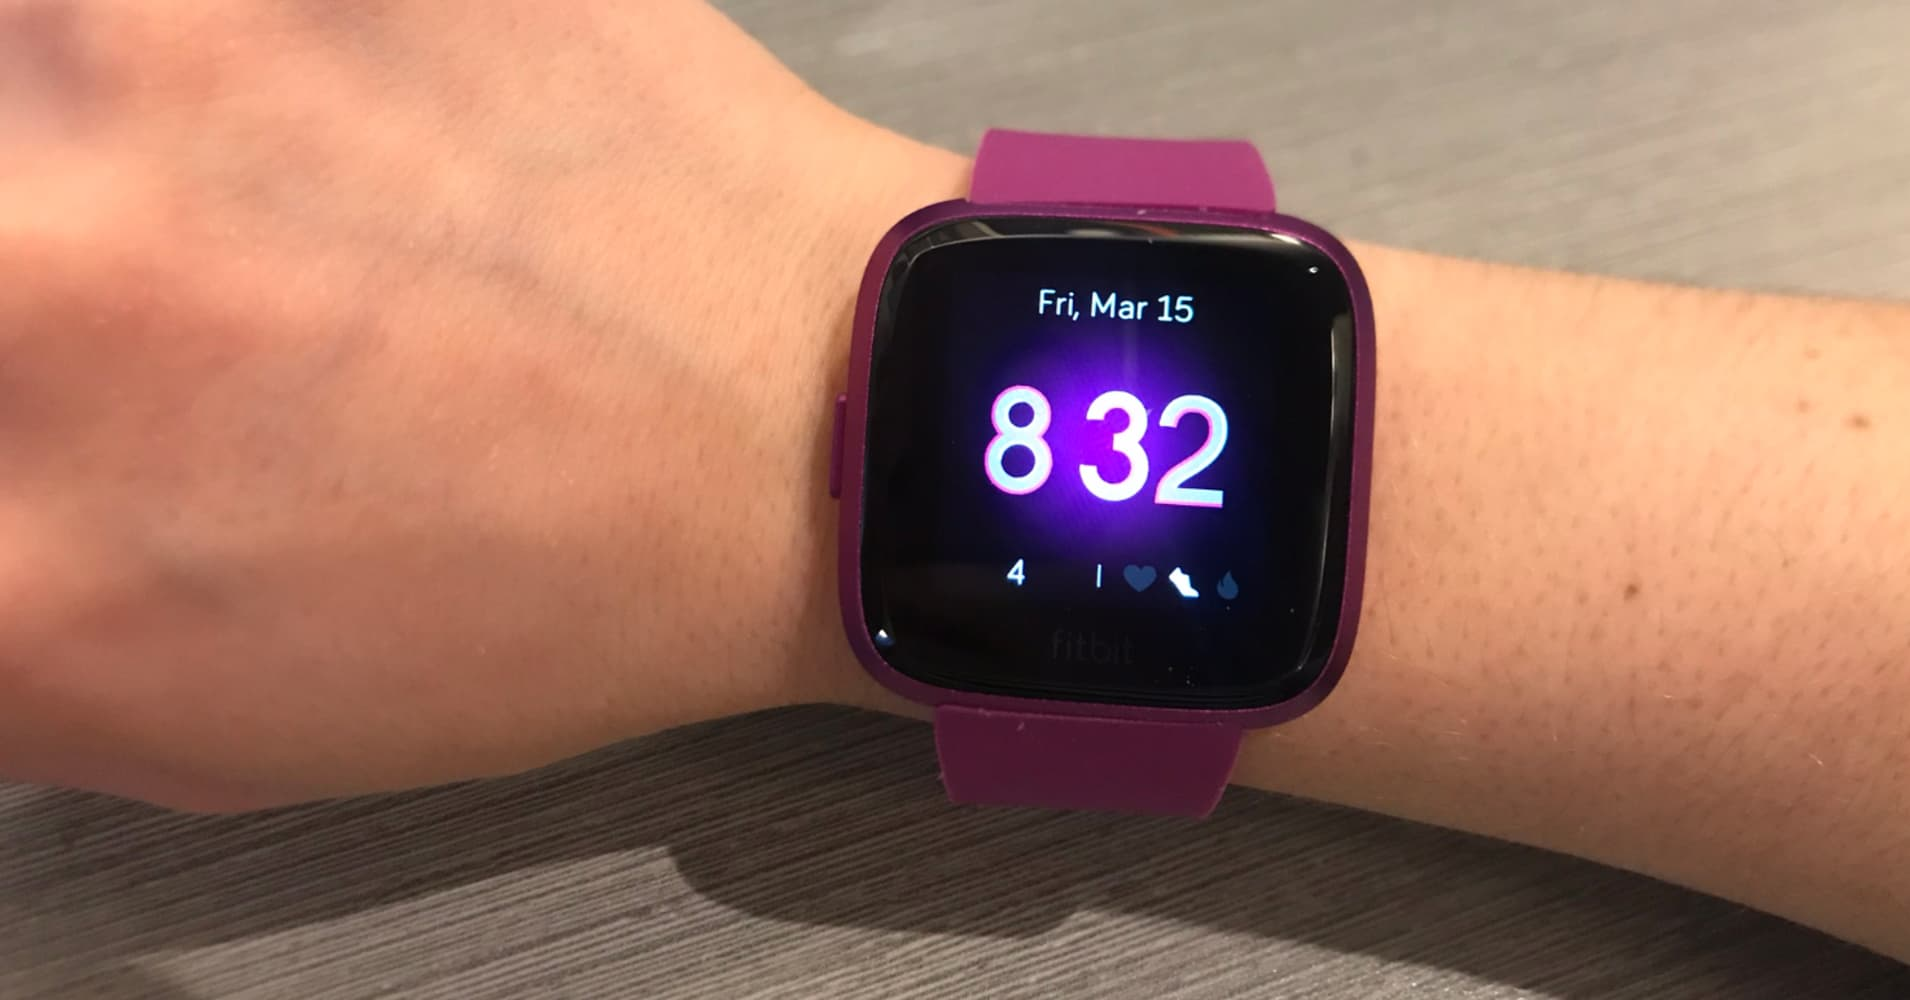 Fitbit's new trackers are cheap and work well, but they're super basic